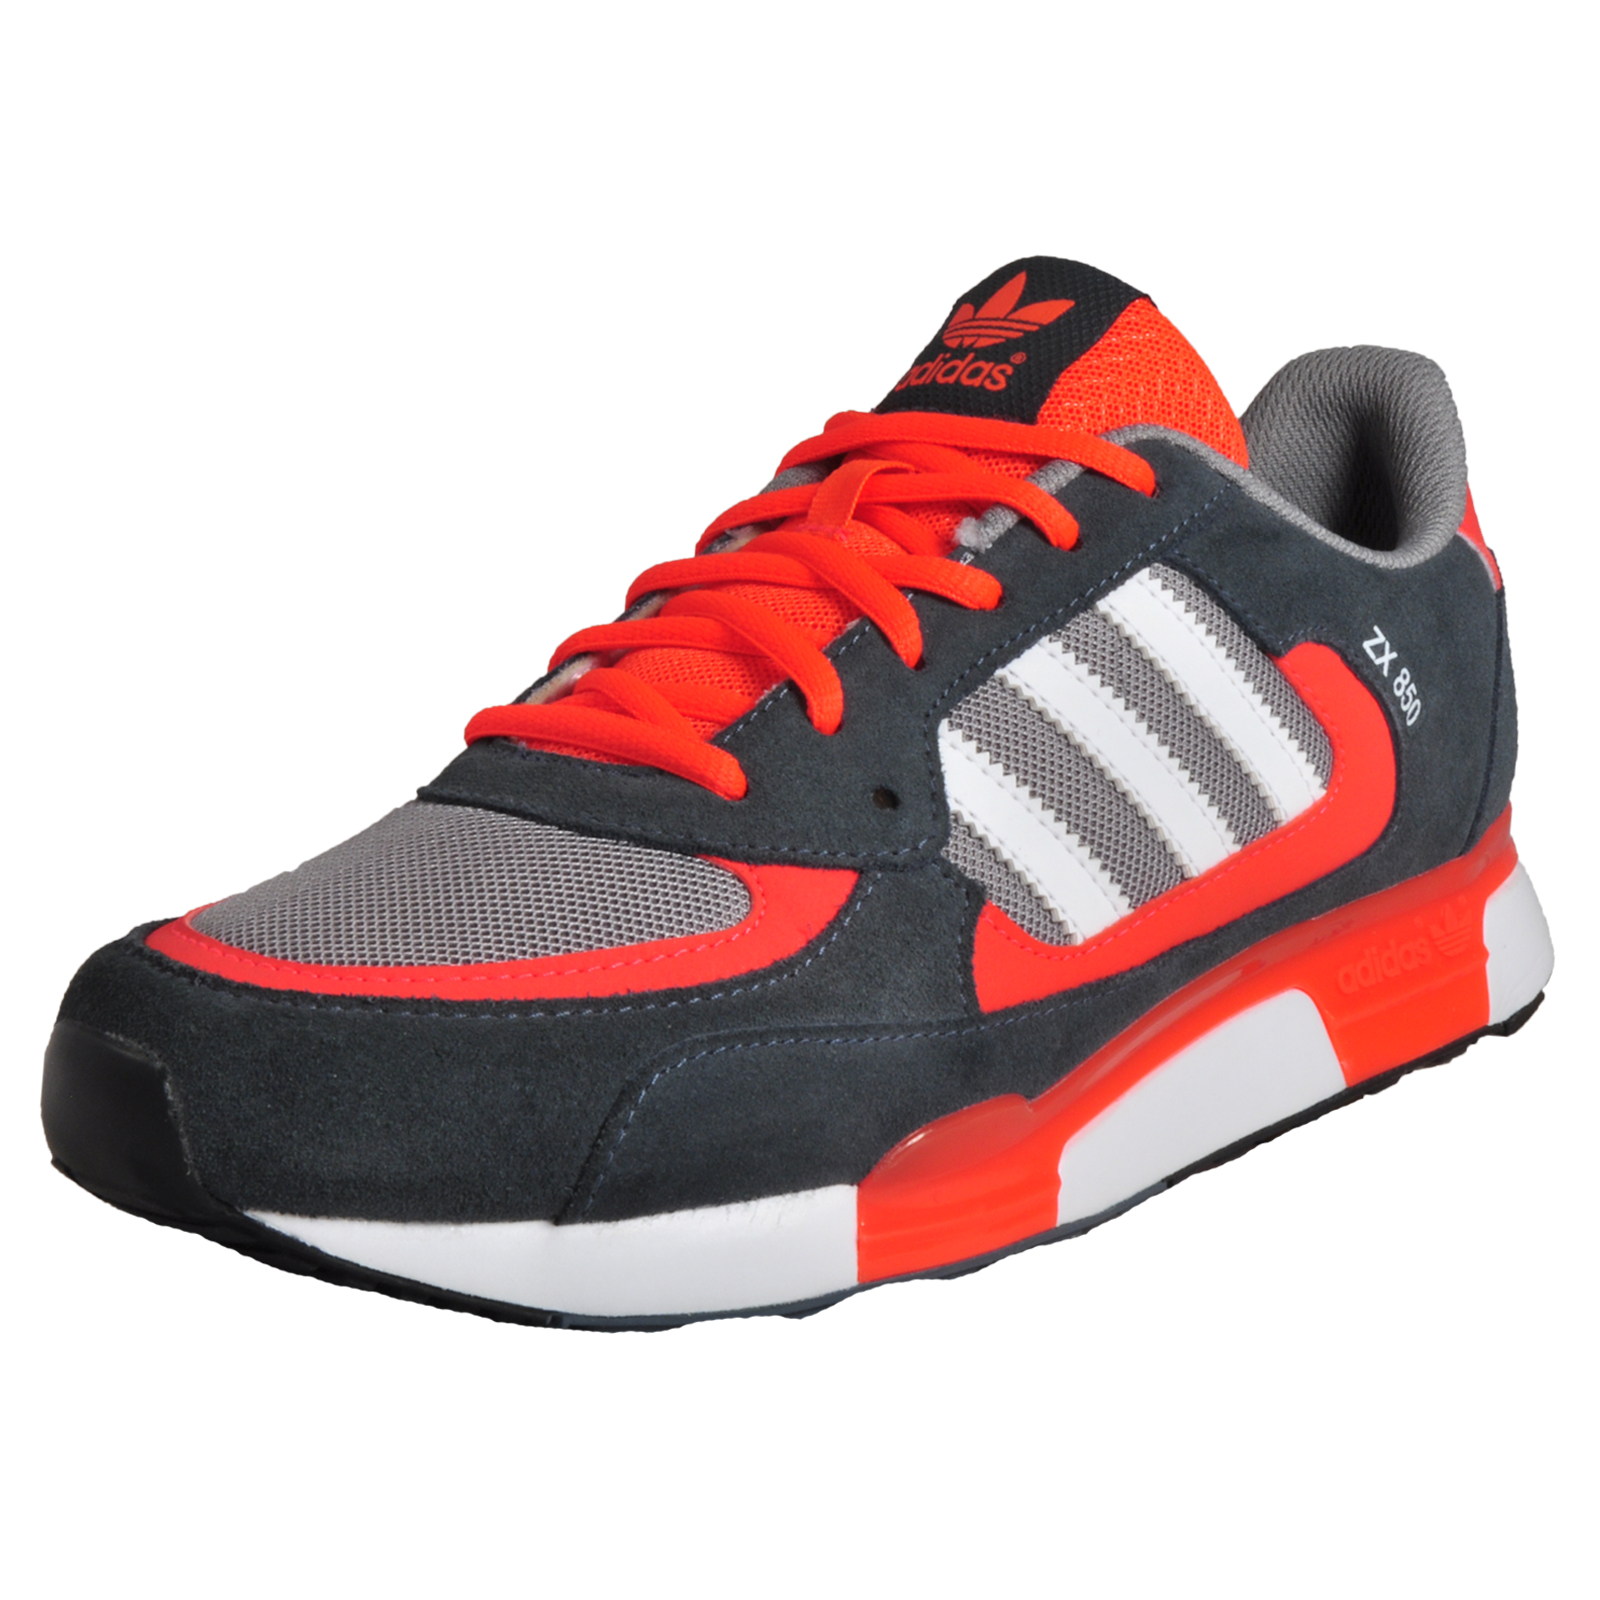 Adidas Originals ZX 850 Men\u0027s Classic Casual Retro Running Shoes Trainers  Grey